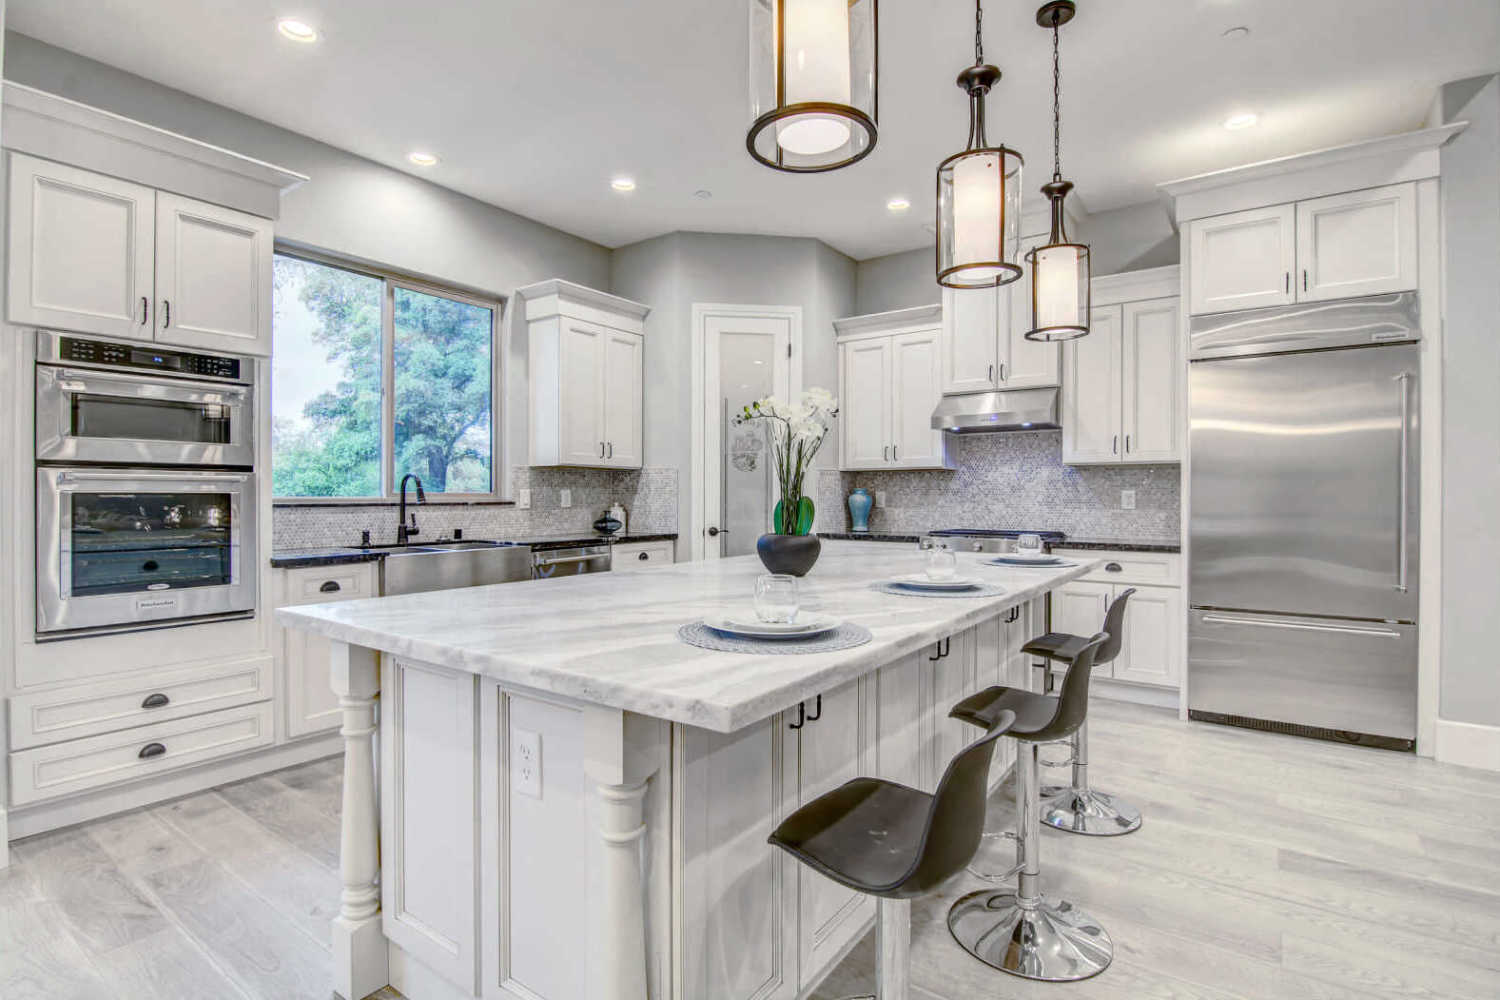 The 7 2019 Kitchen Renovations Trends You Don't Want to Miss